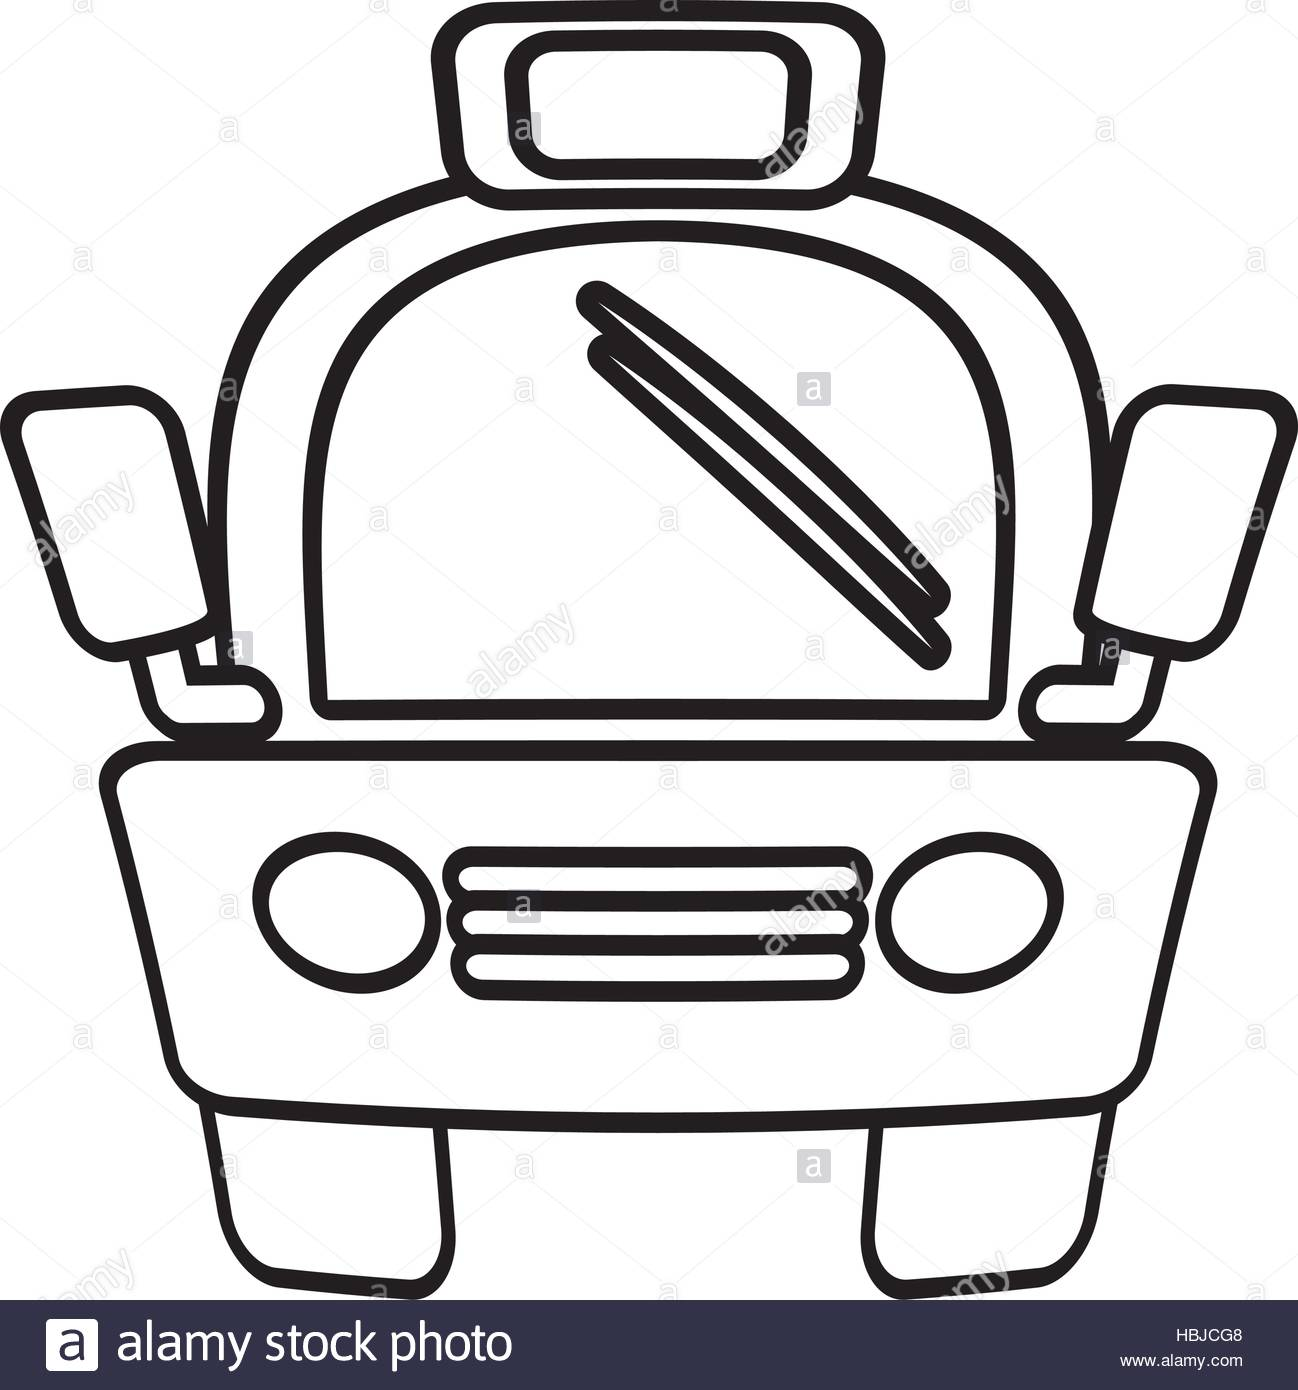 1298x1390 Outline Taxi Car Vehicule Transport Public Vector Illustration Eps